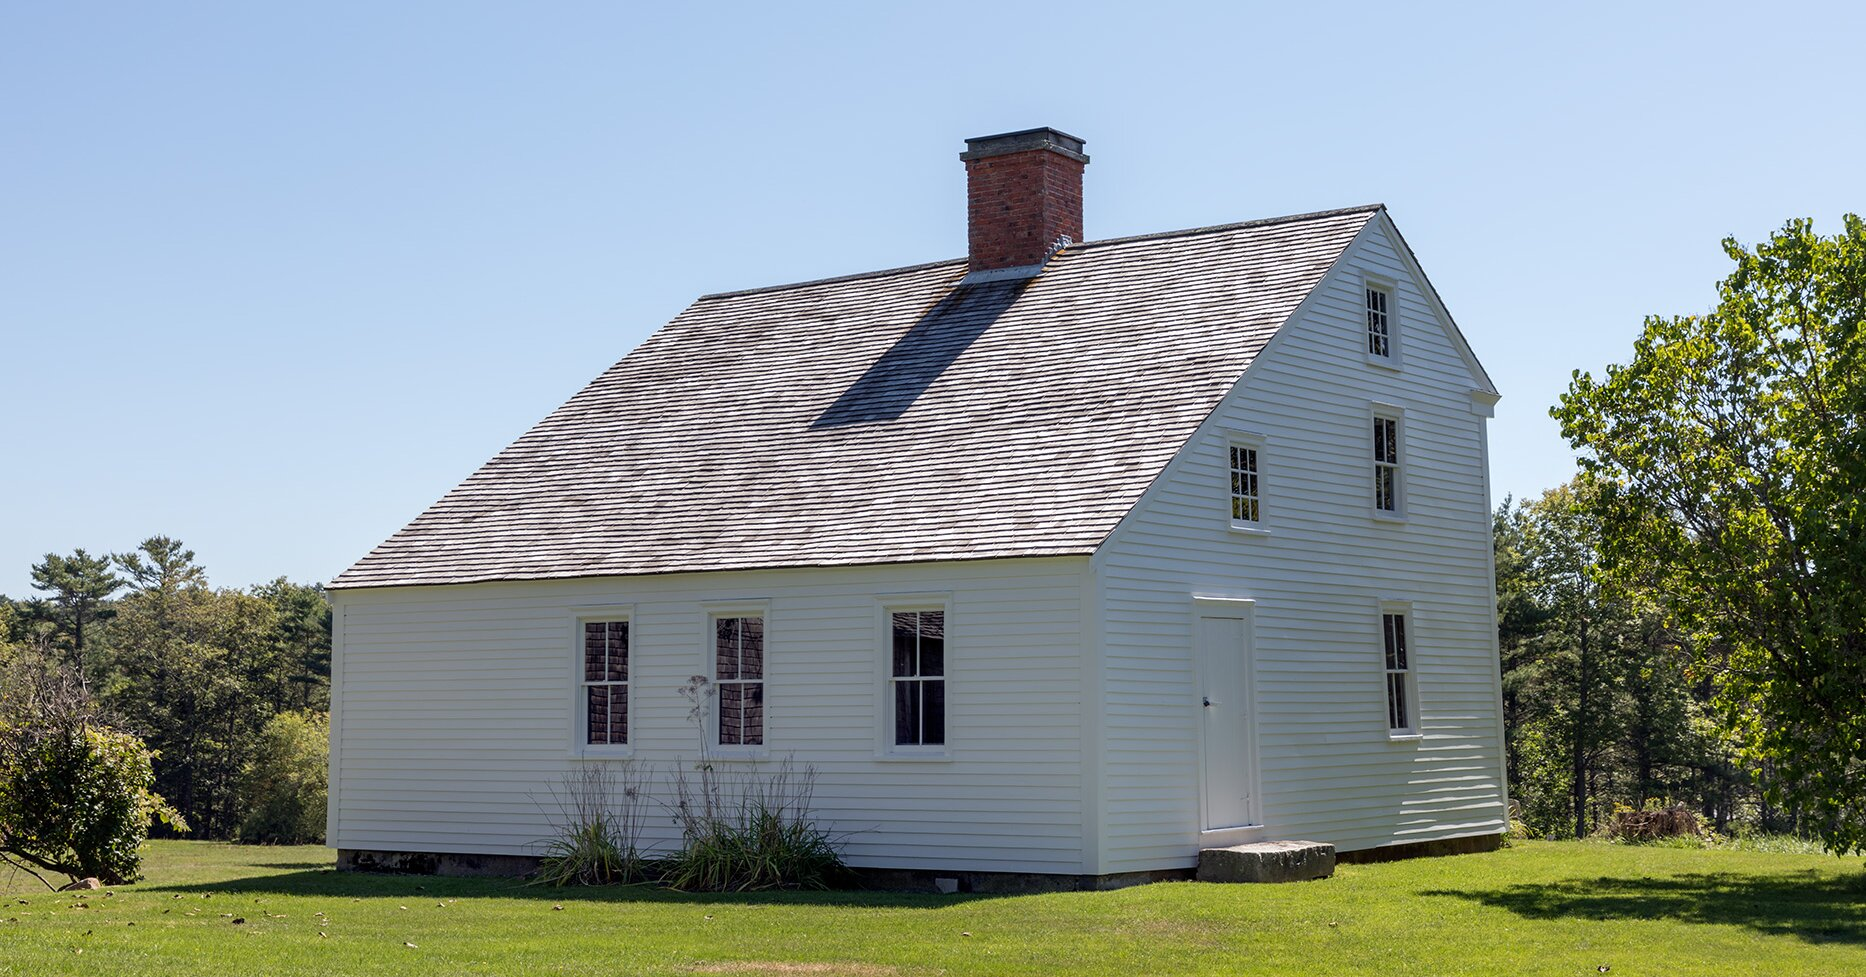 What Is a Saltbox House? Learn the Story Behind the Classic New England Style